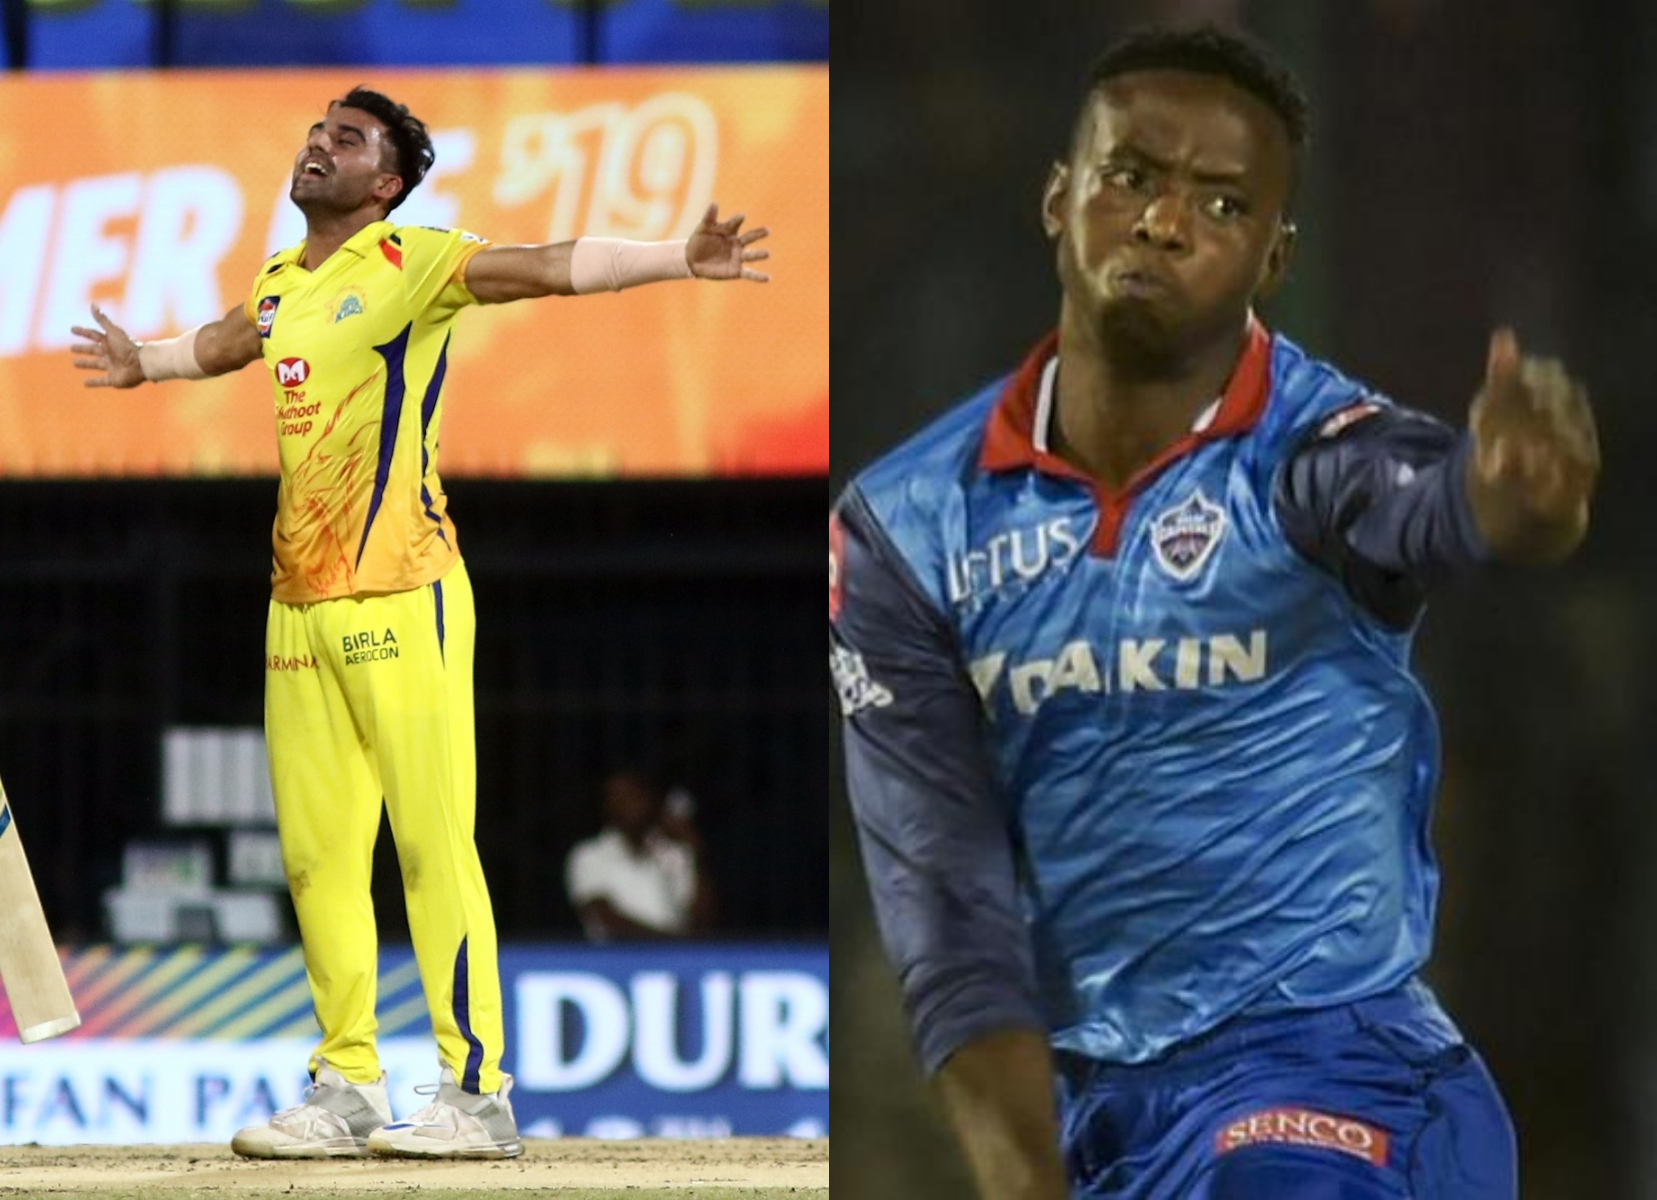 Chahar and Rabada are the fast bowlers of this COC IPL XI | IANS